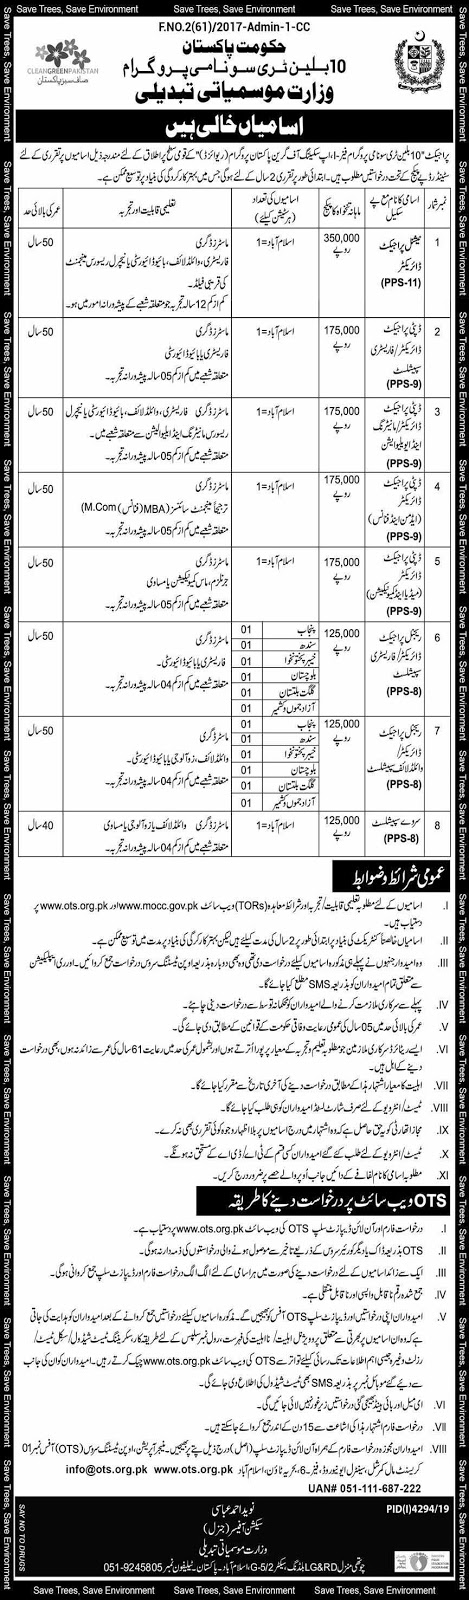 Ministry Of Climate Change Govt Of Pakistan Jobs For Project Director, Dupty Project Director and Others February 2020